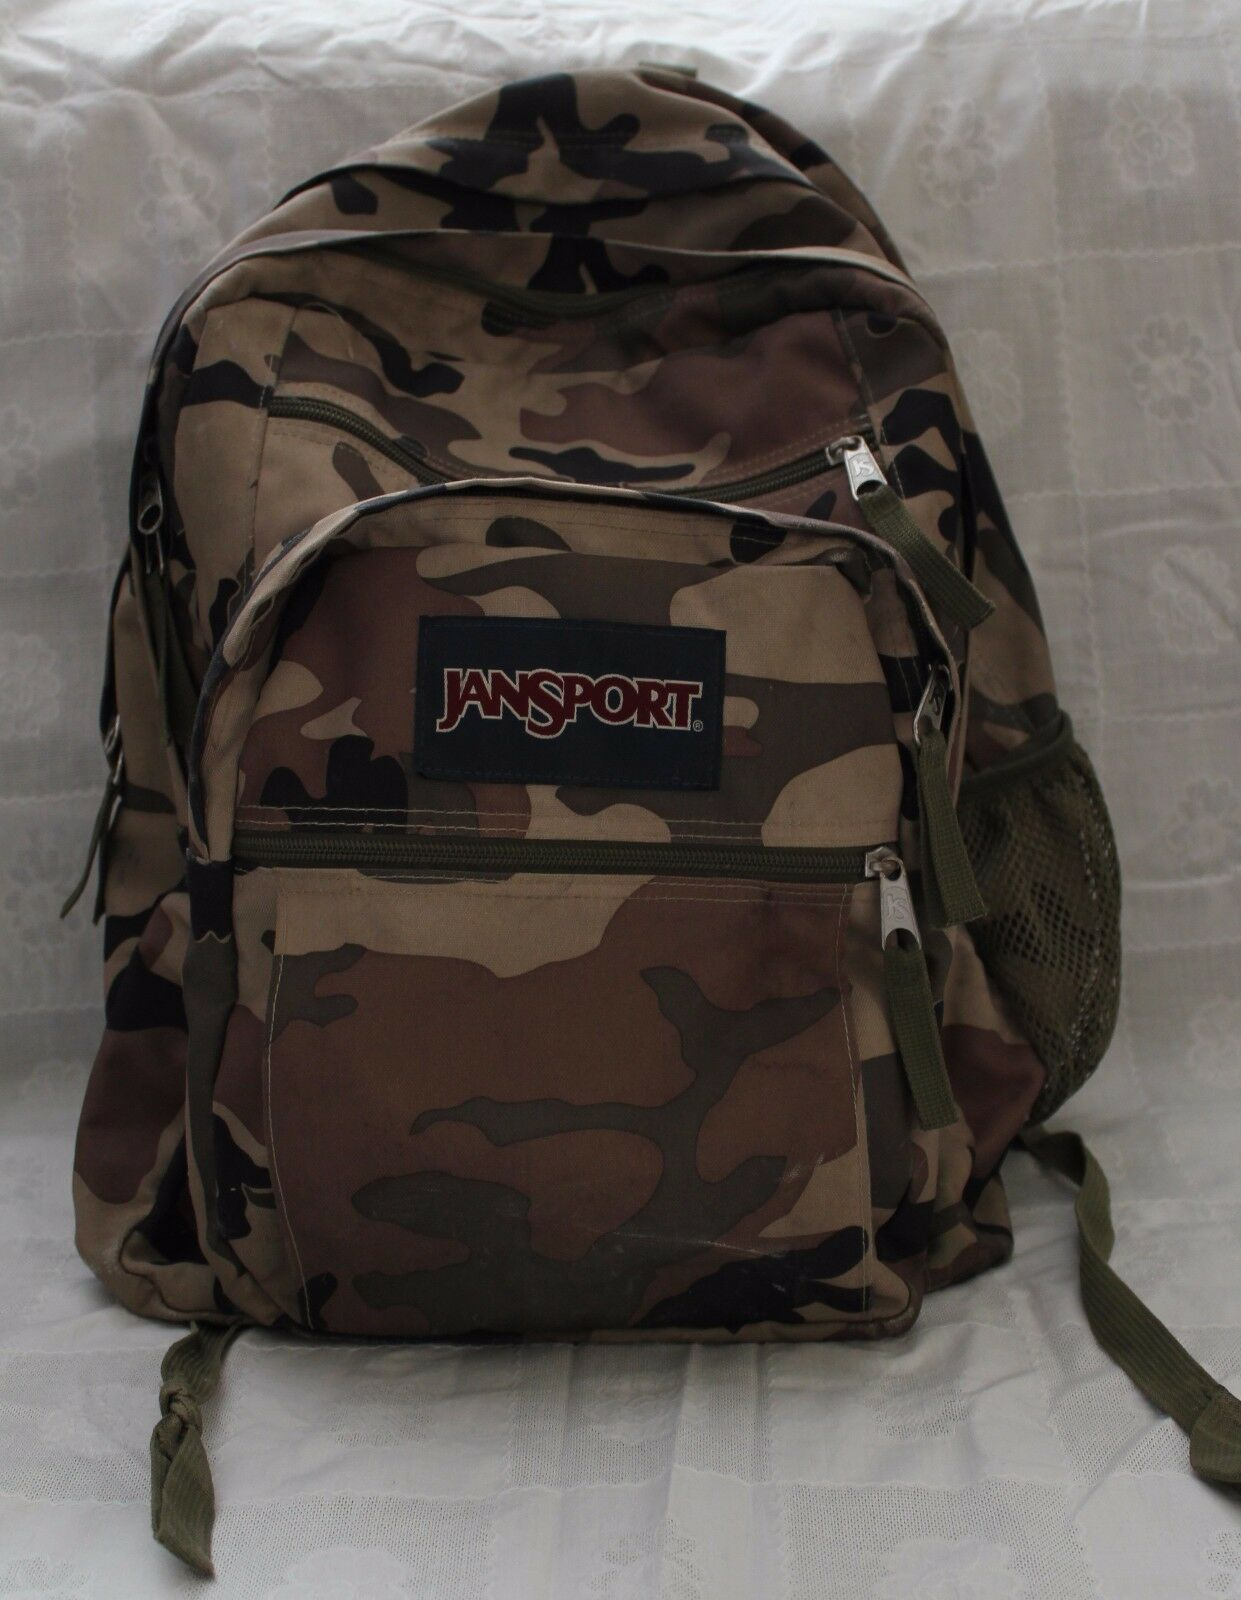 Primary image for JANSPORT Hiking/School/Hunting Backpack Large 6 pockets w/organizer TDN7